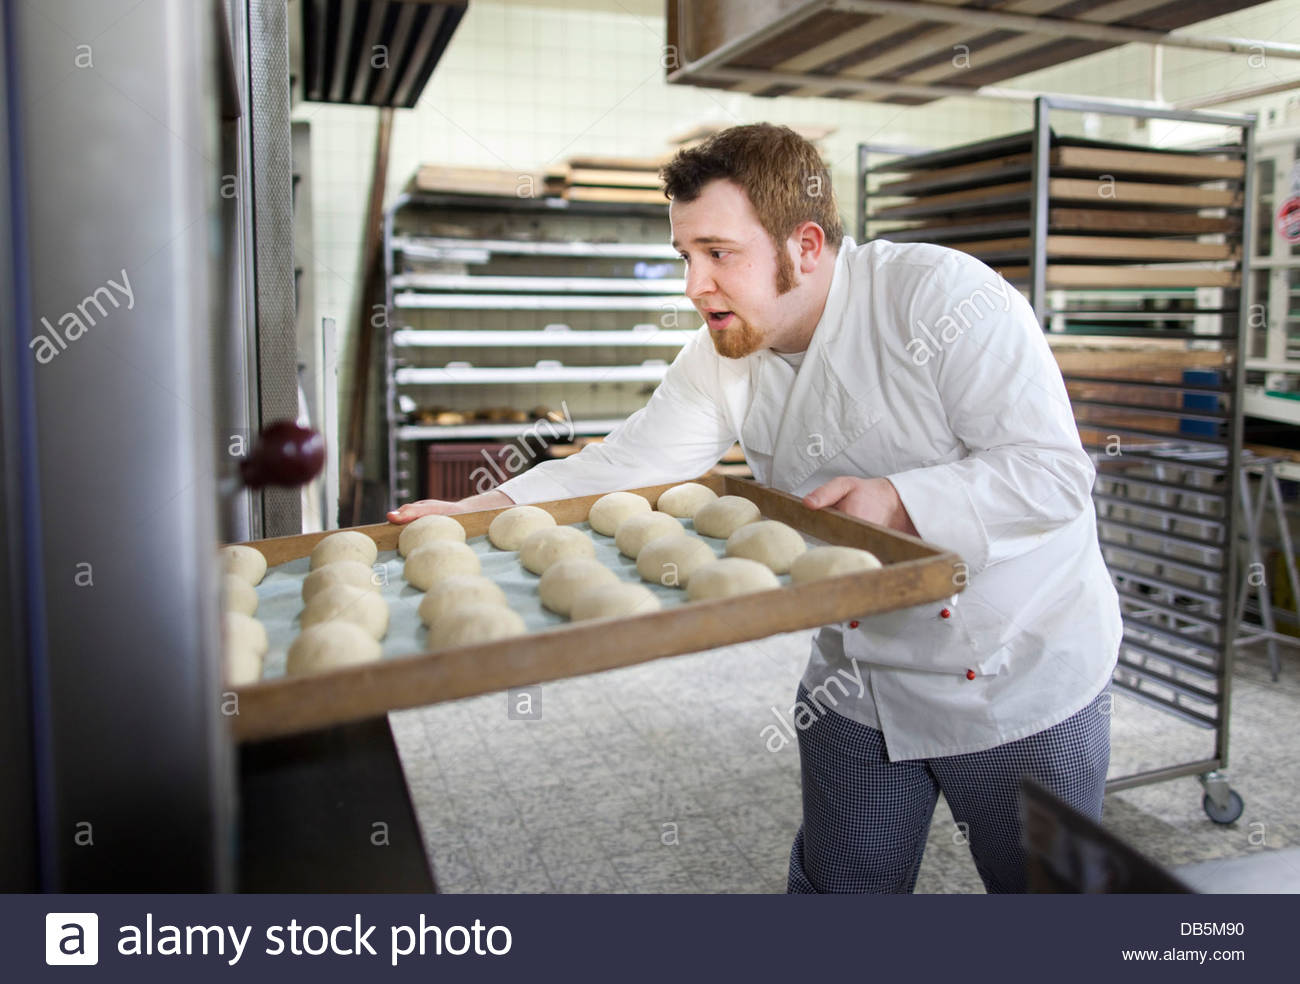 Chef baking buns in a bakery - Stock Image